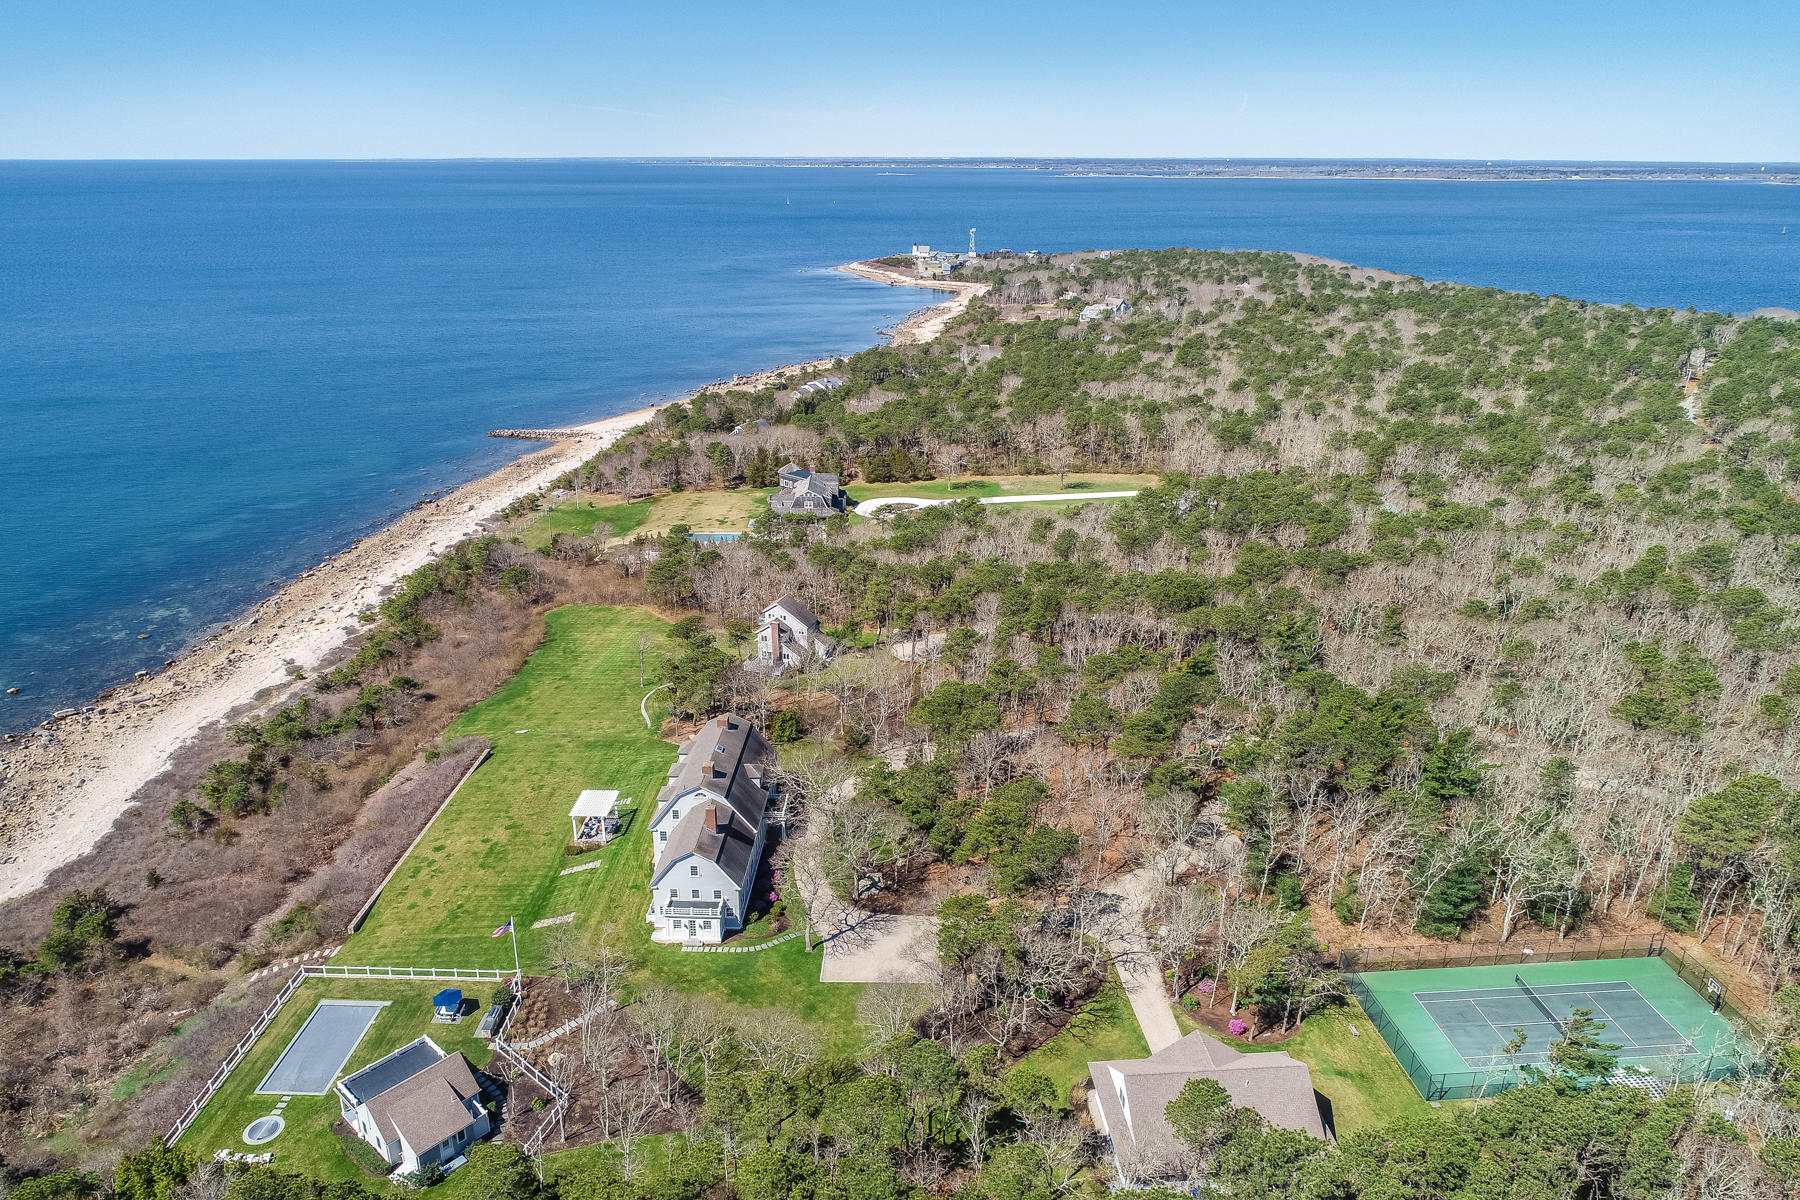 169-181 South Road, Pocasset, Massachusetts, 02559, 15 Bedrooms Bedrooms, ,10 BathroomsBathrooms,Residential,For Sale,169-181 South Road,22002732